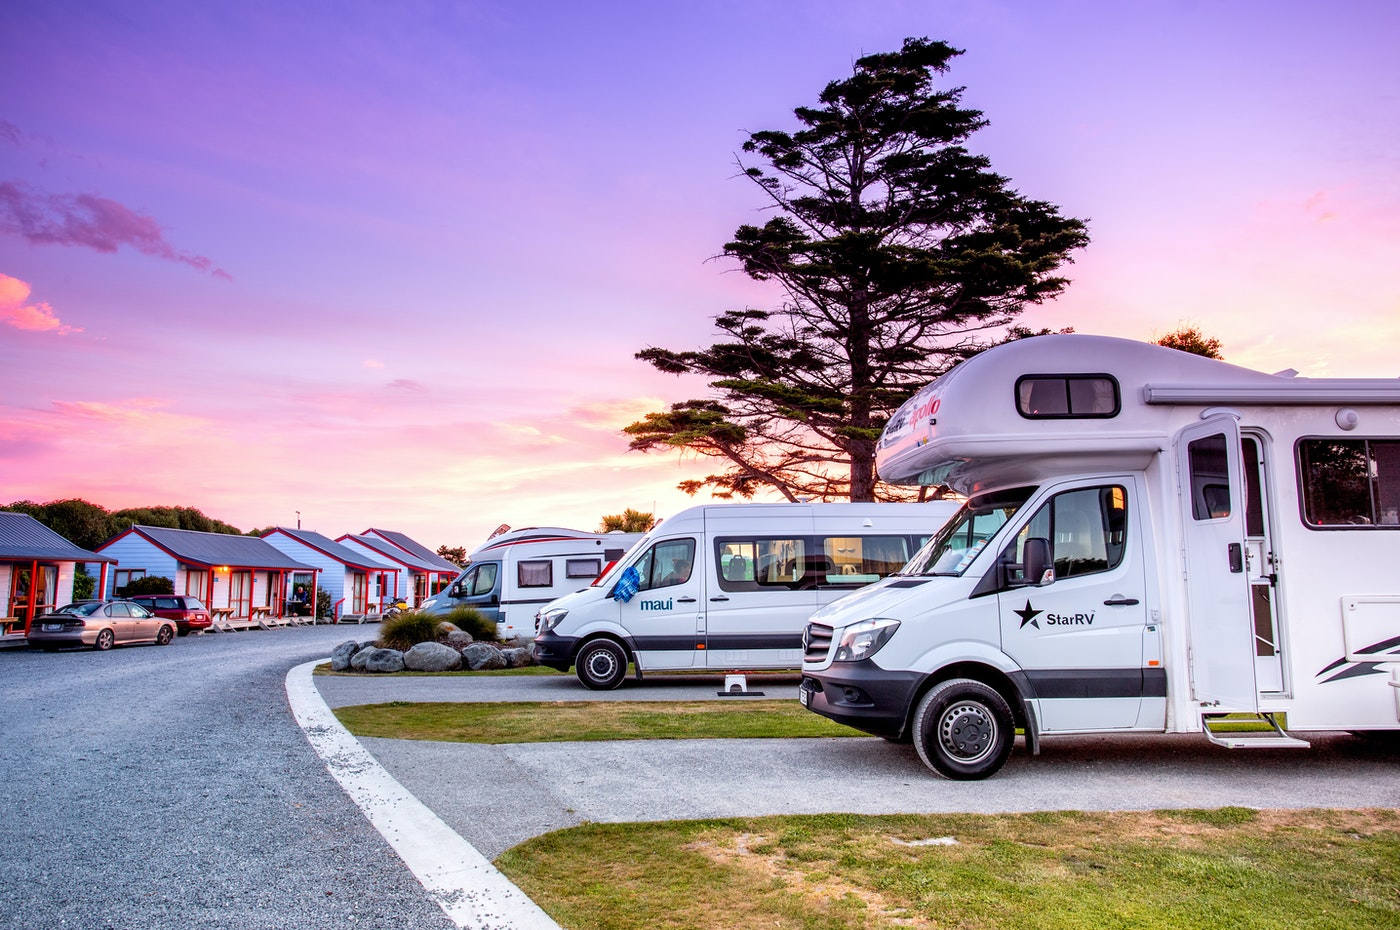 kaikoura holiday park accommodation caravans